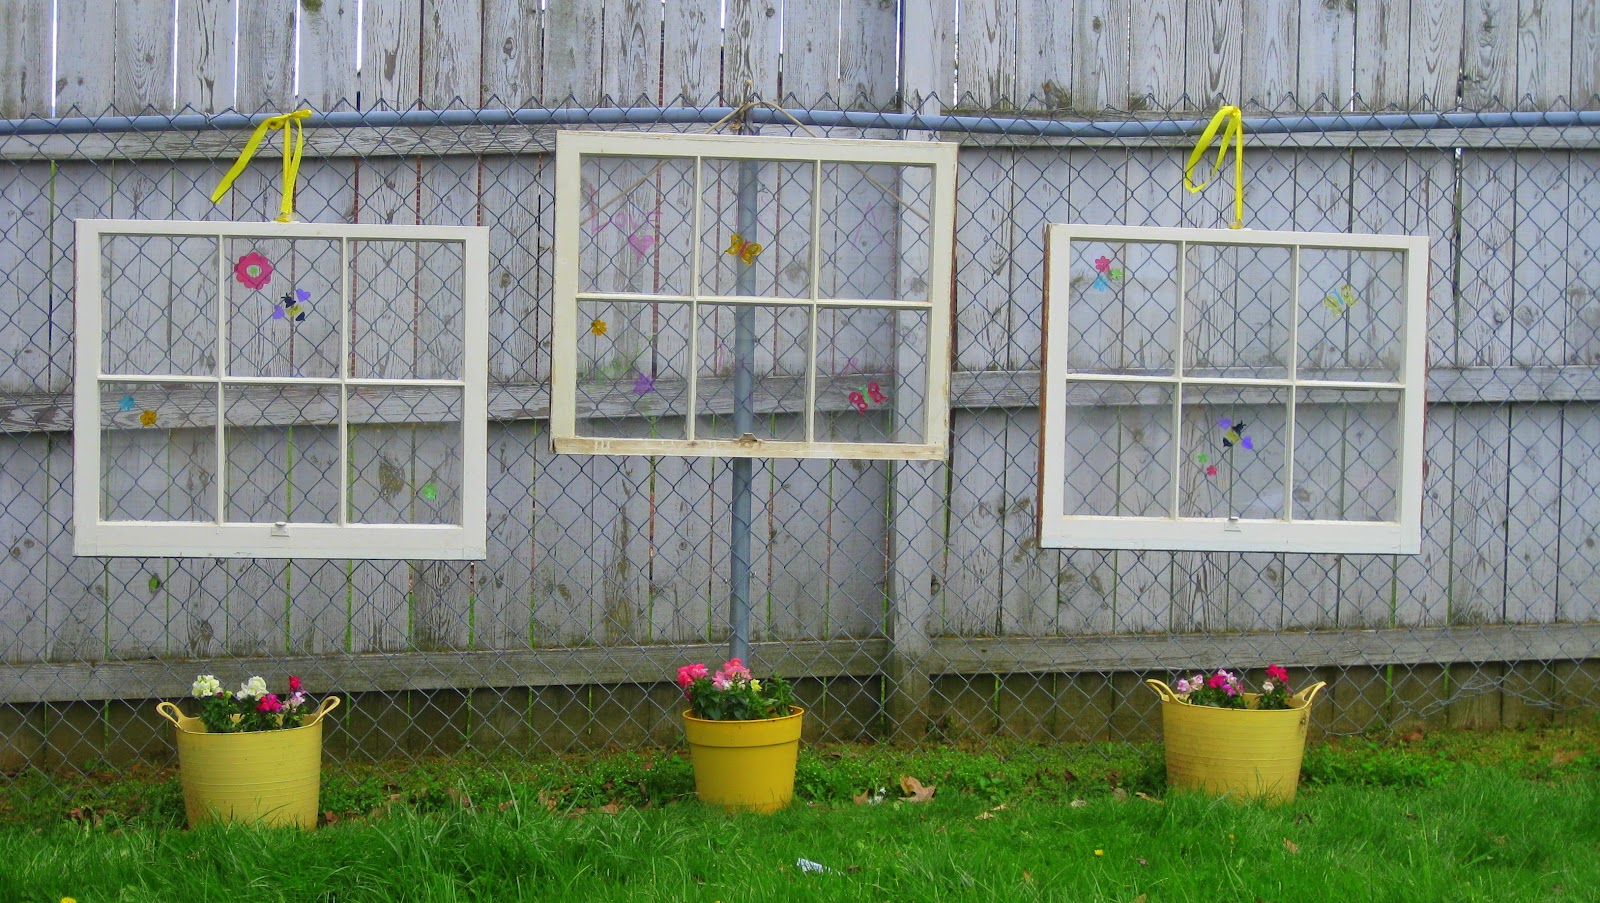 Downtime upcycle garden decorations